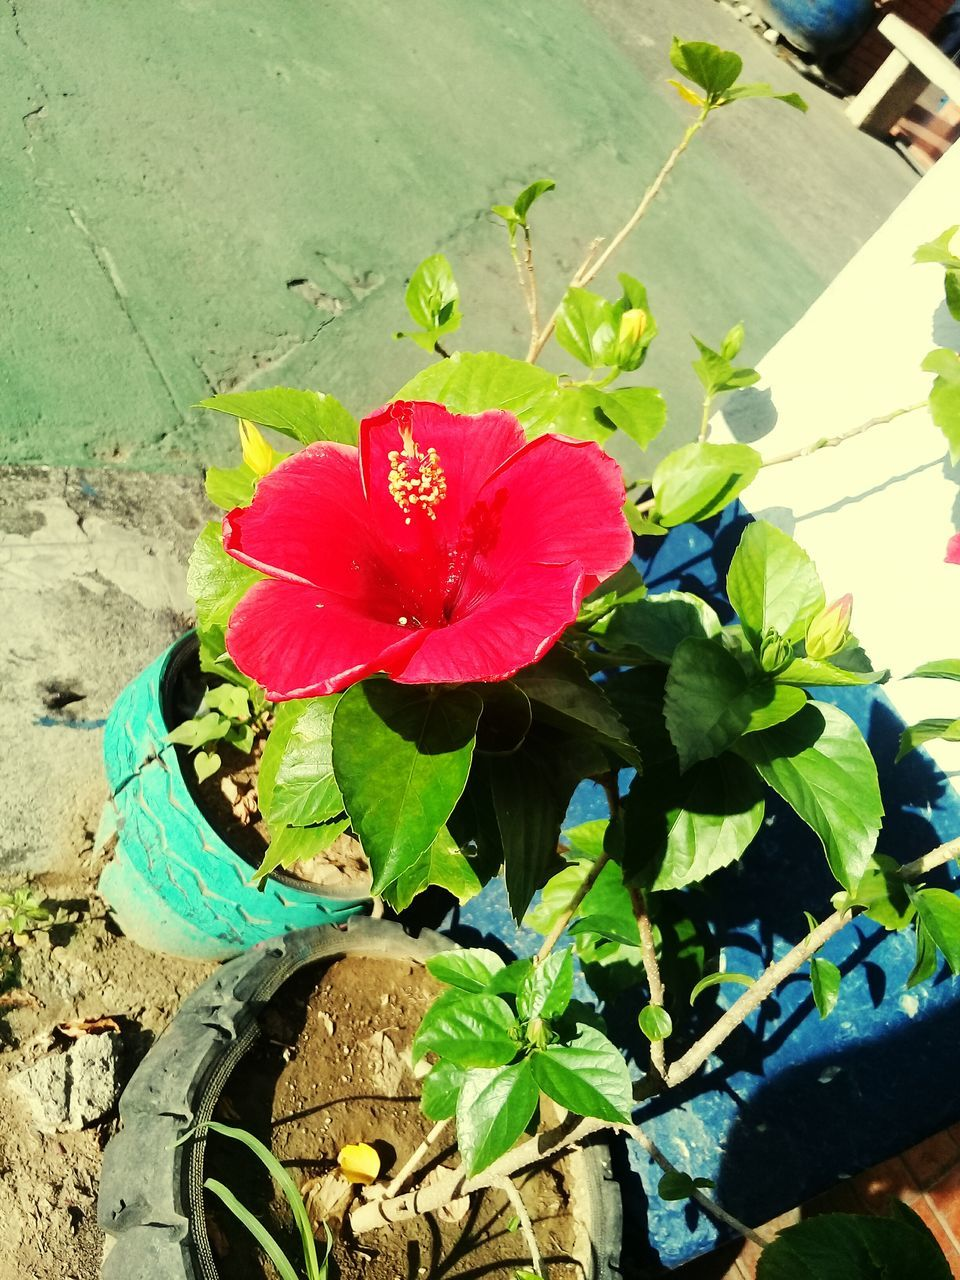 flower, plant, leaf, growth, nature, petal, beauty in nature, no people, fragility, day, outdoors, potted plant, high angle view, freshness, green color, flower head, red, blooming, sunlight, close-up, hibiscus